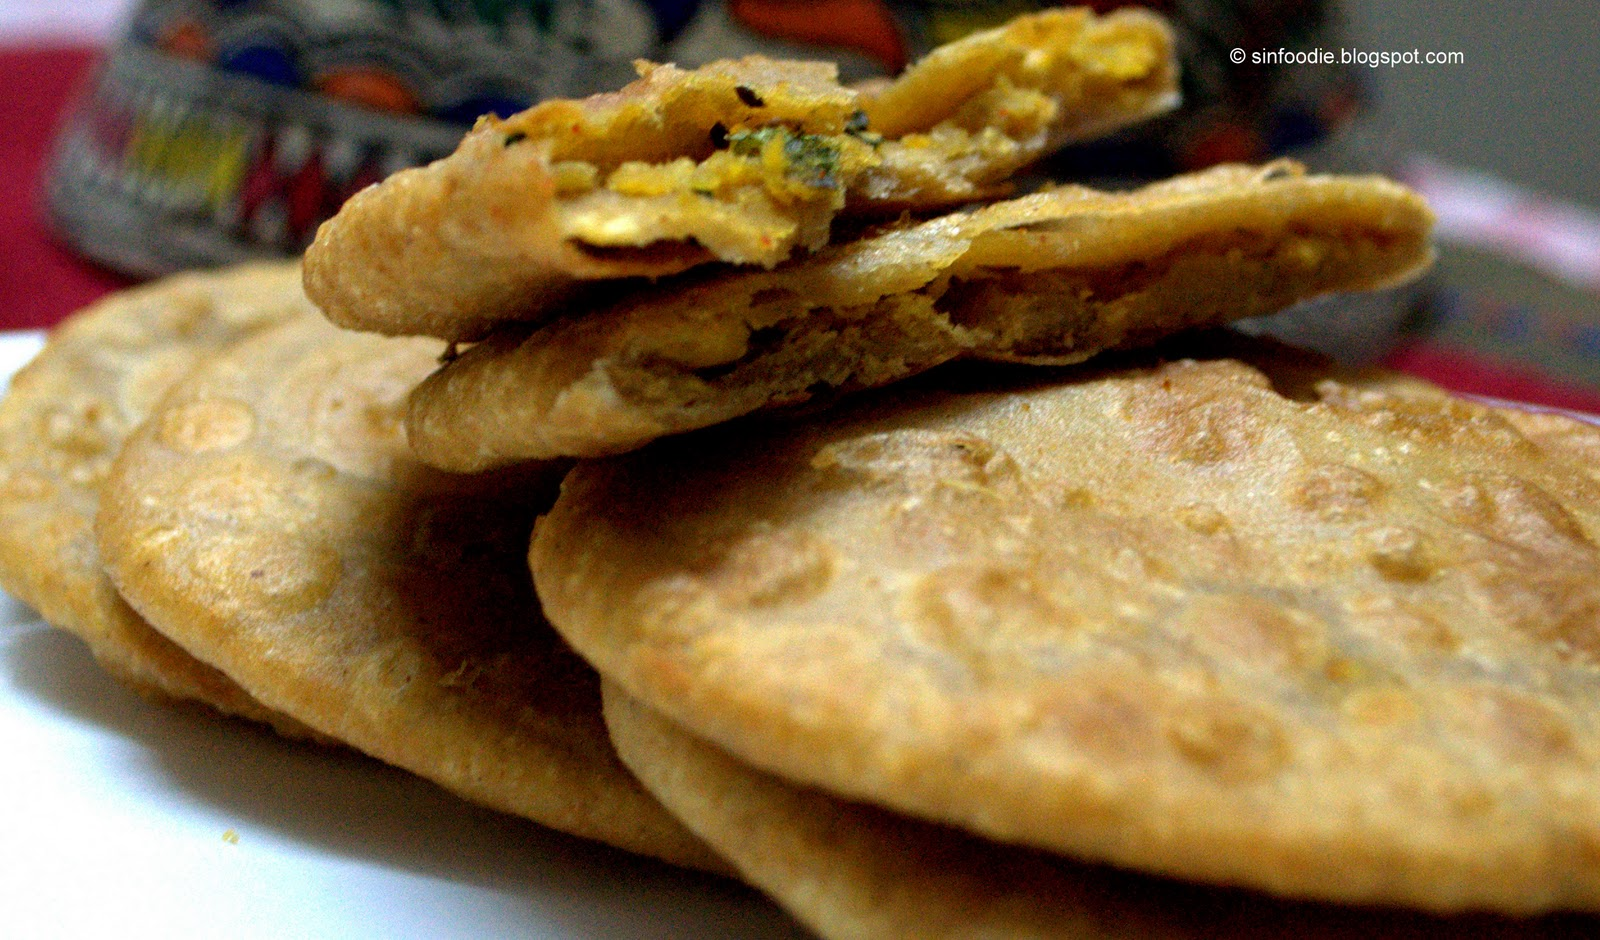 Sinfoodie for the love of cooking chana dal puri bengal gram dal